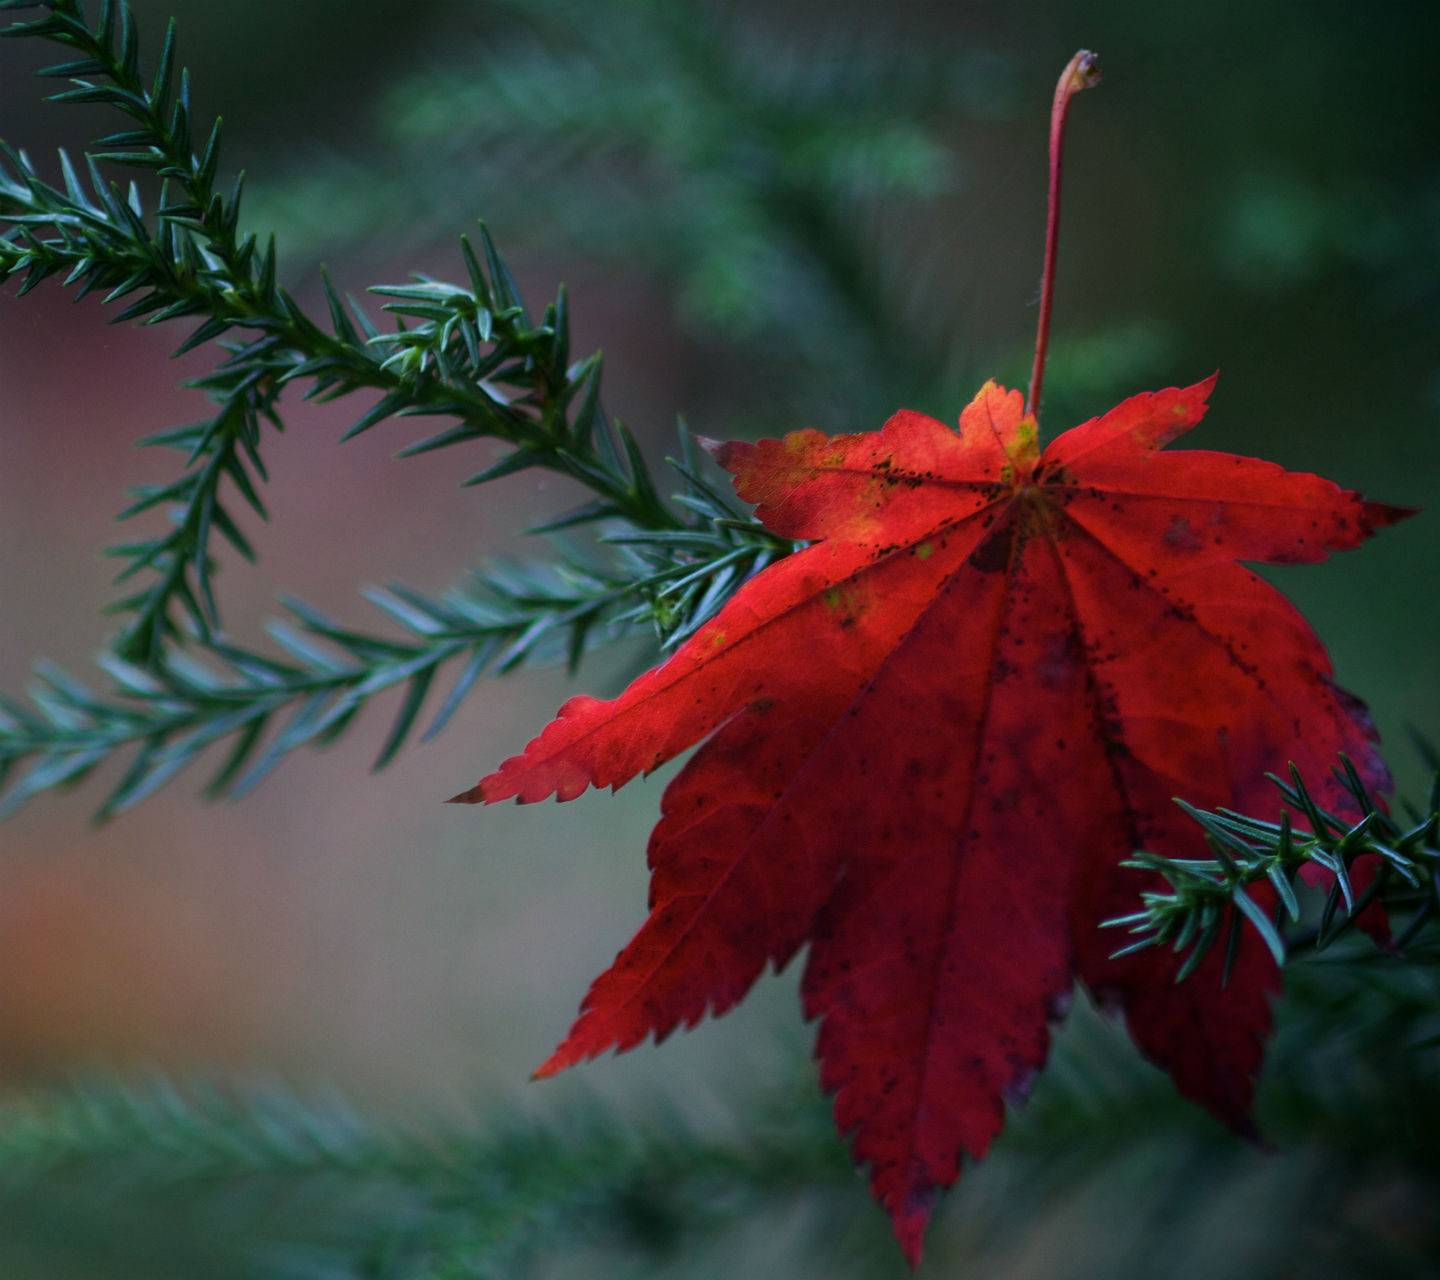 Red Autumn Hd